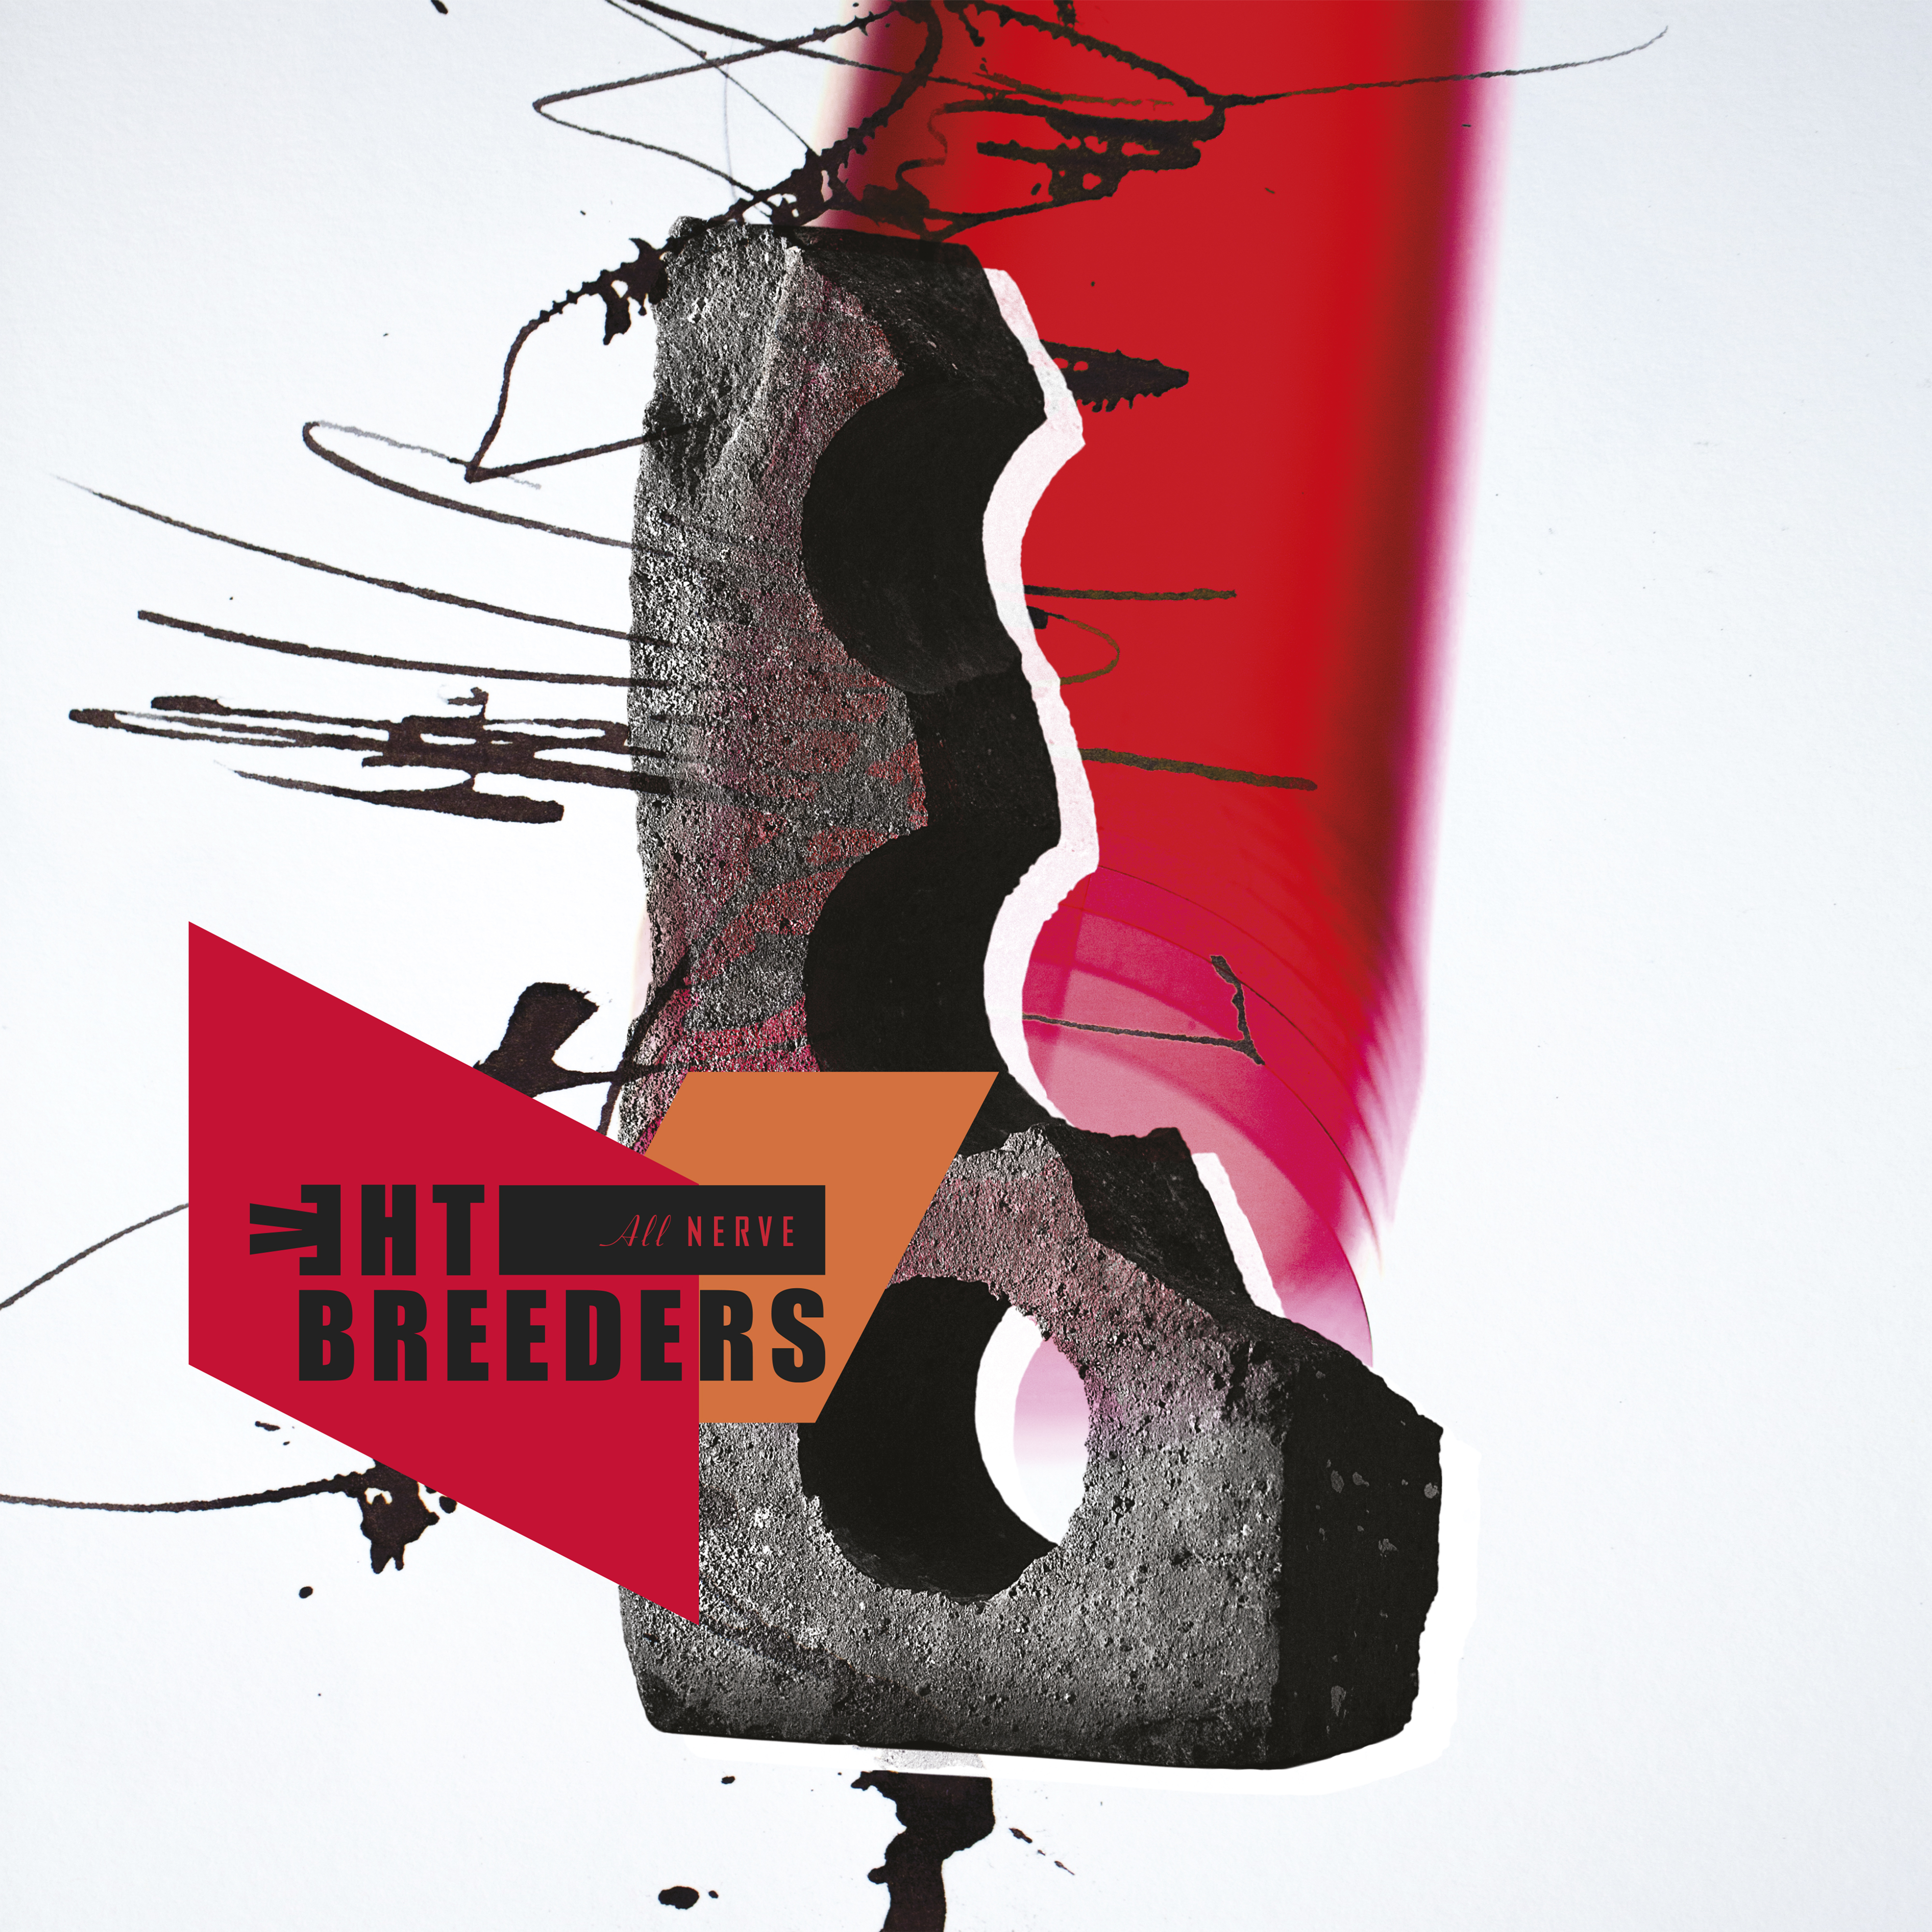 the breeders all nerve album artwork The Breeders announce reunion album, All Nerve, the first featuring the bands classic lineup in 25 years